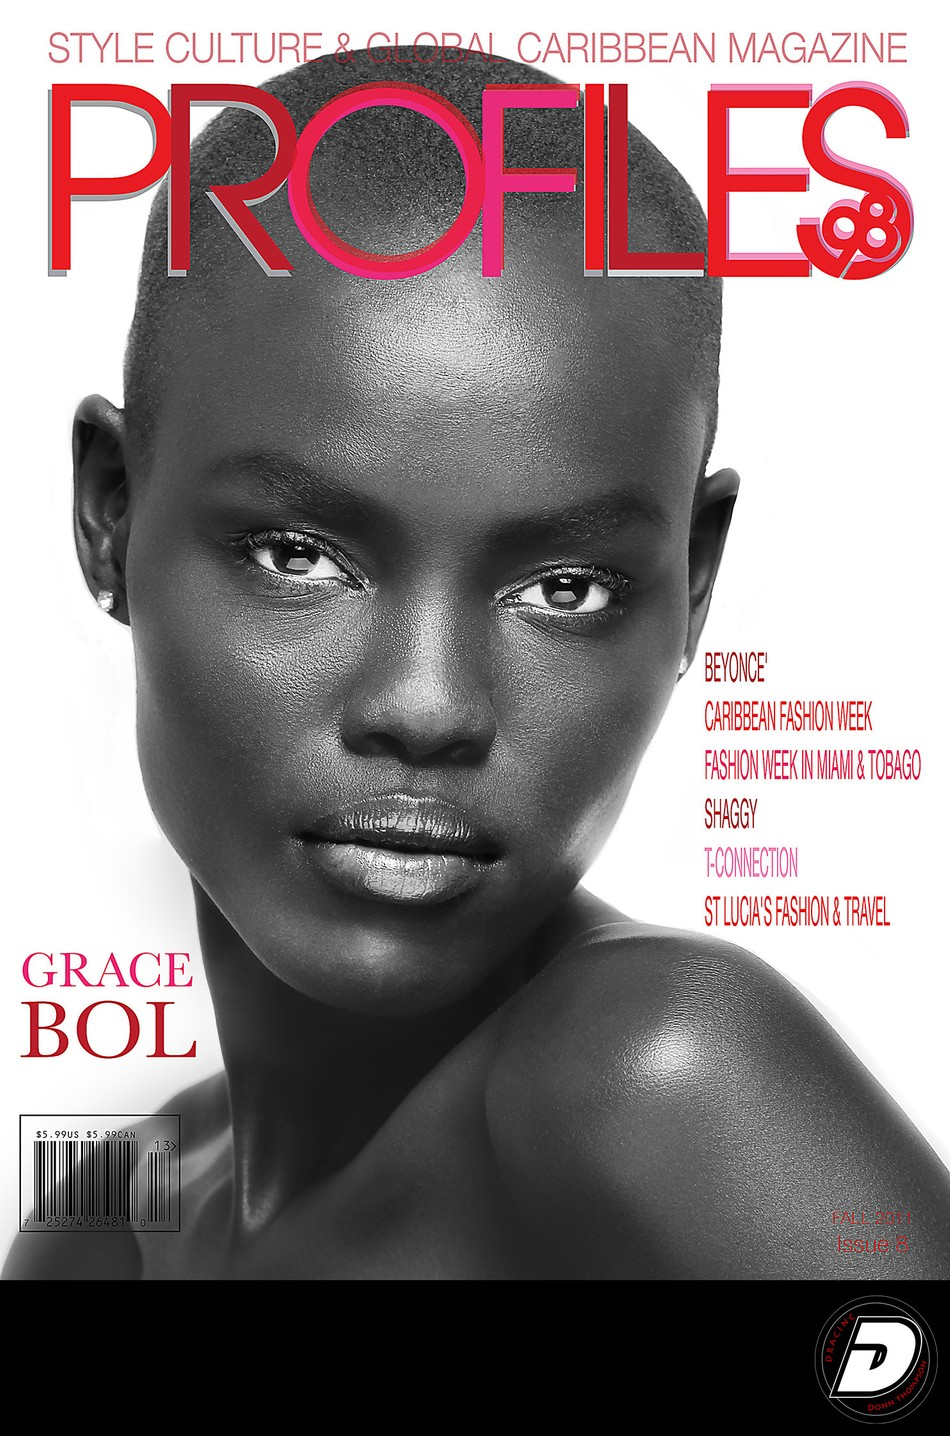 Commercial Advertising Photo Grace Bol Profiles98 Cover #8